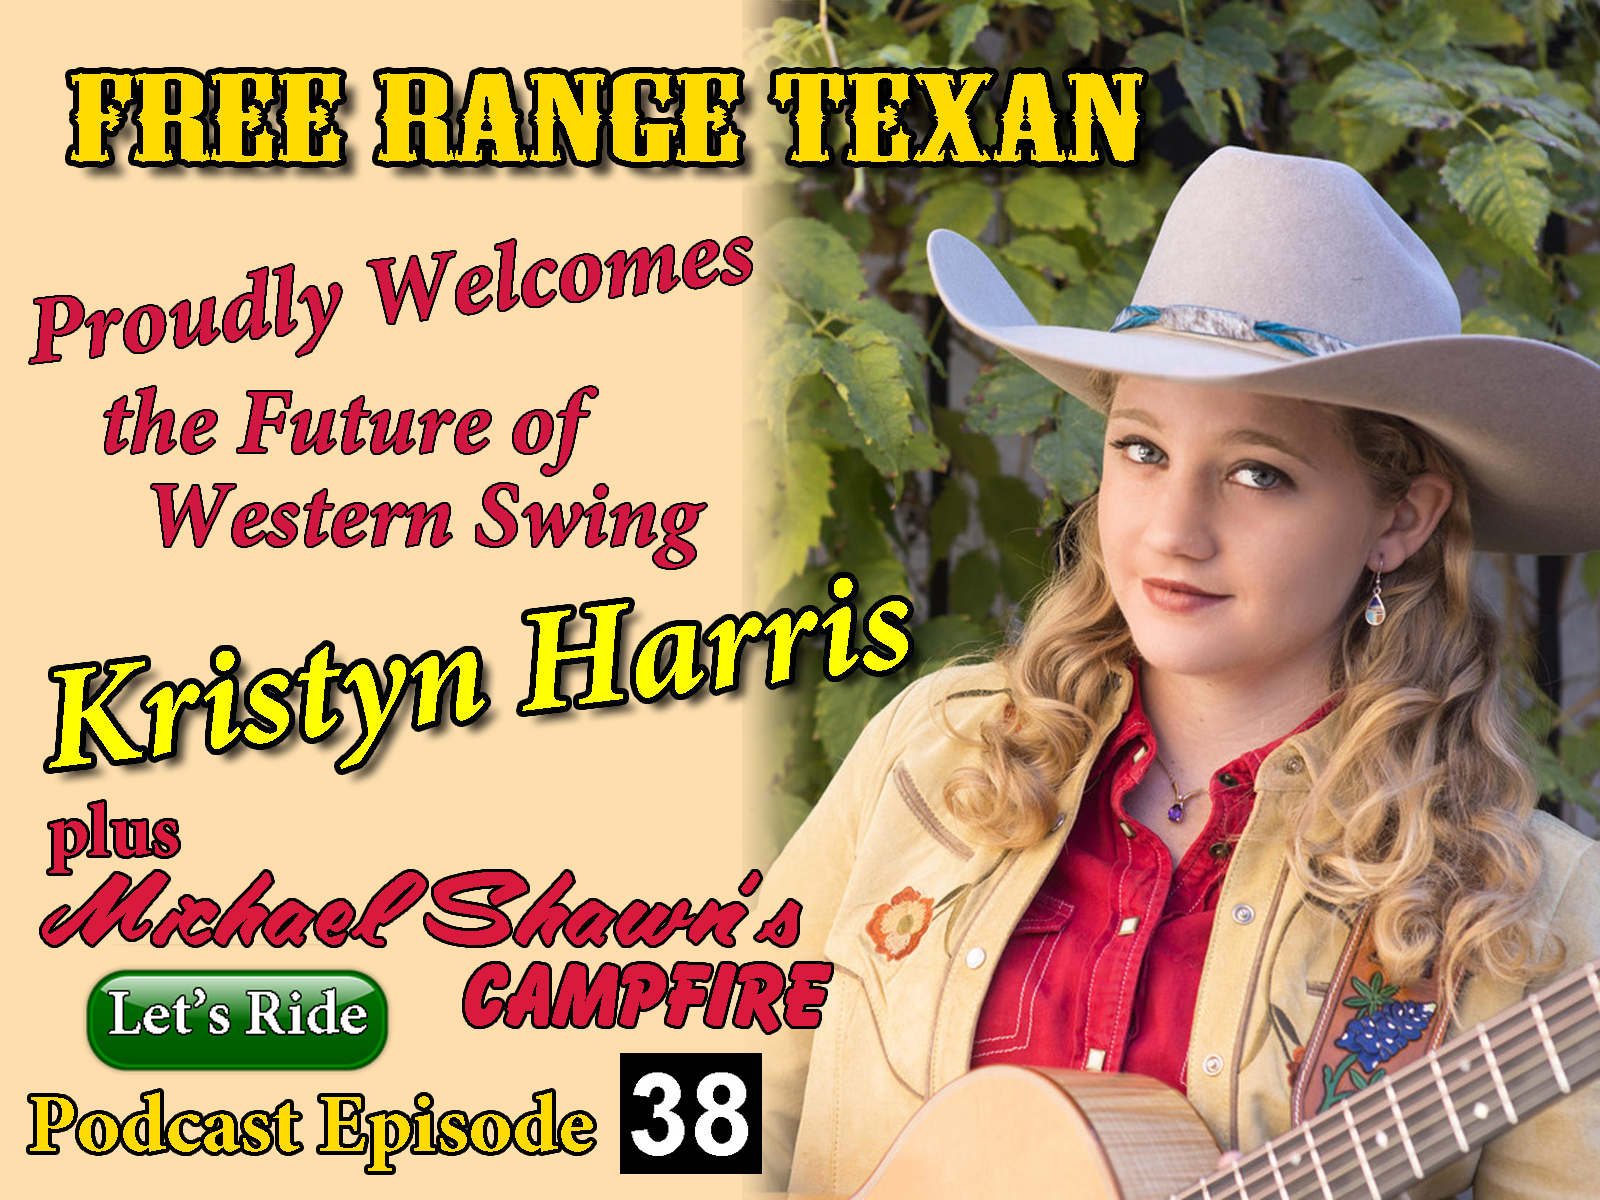 Free Range Texan Podcast Episode 38 Kristyn Harris